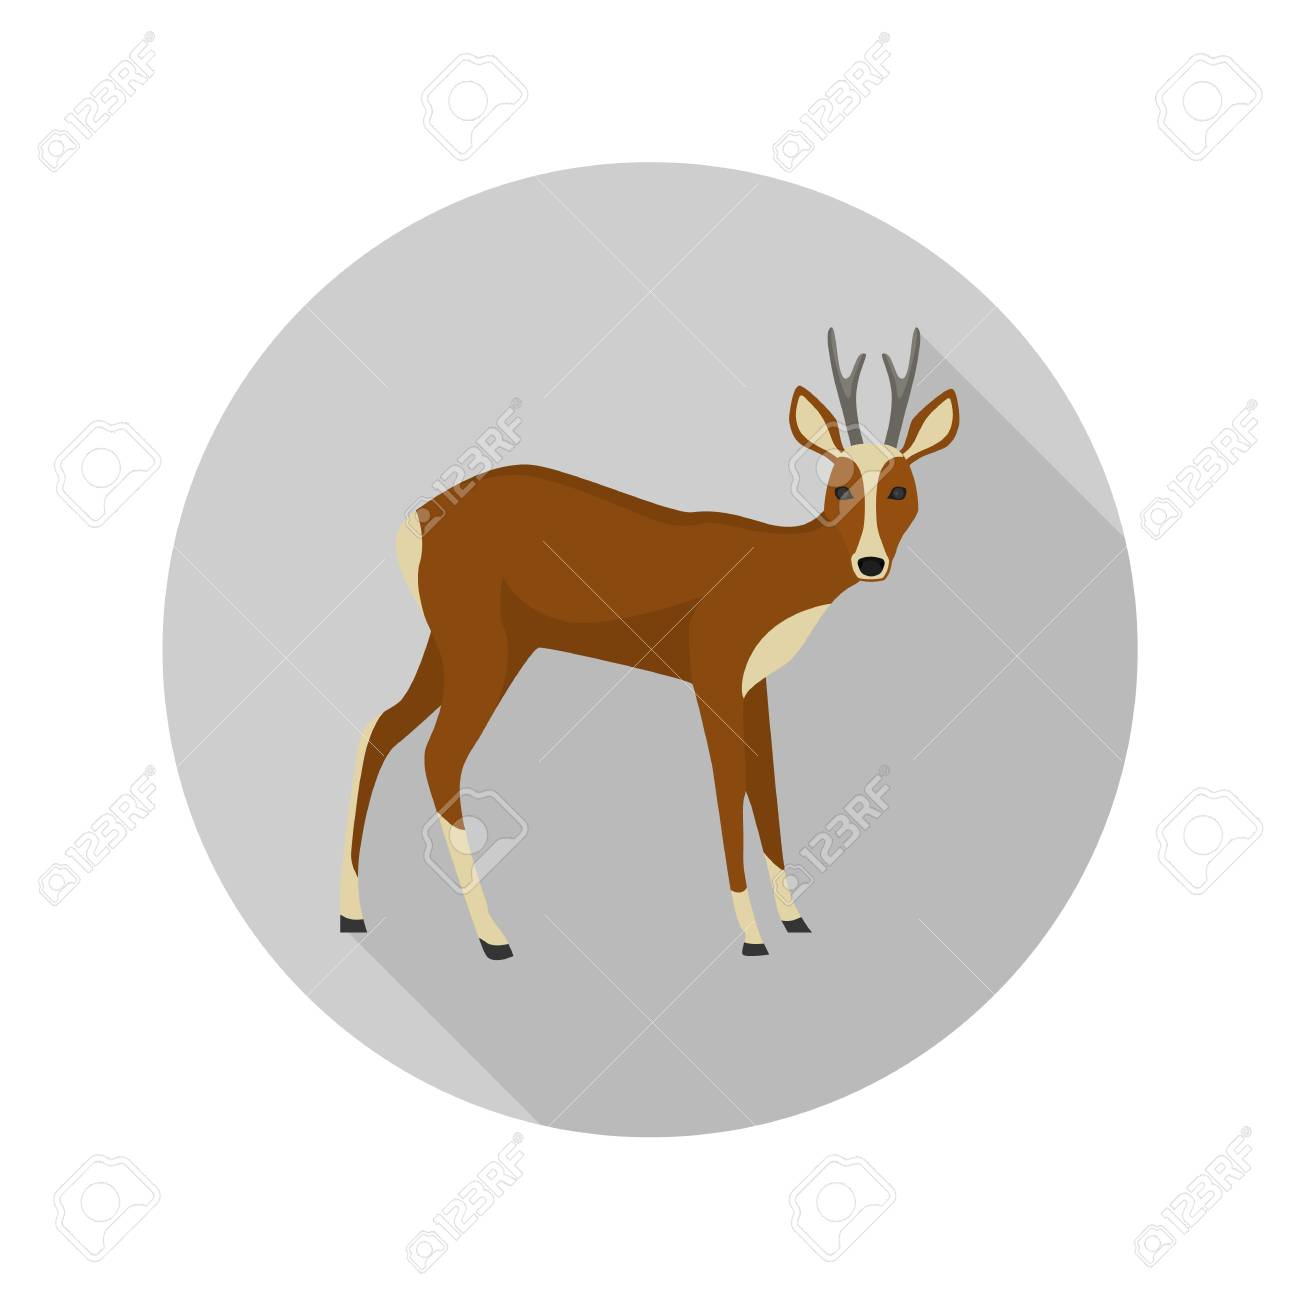 Antelope Color Flat Icon For Web And Mobile Design Royalty Free Roan  Antelope Antelope Color By Number